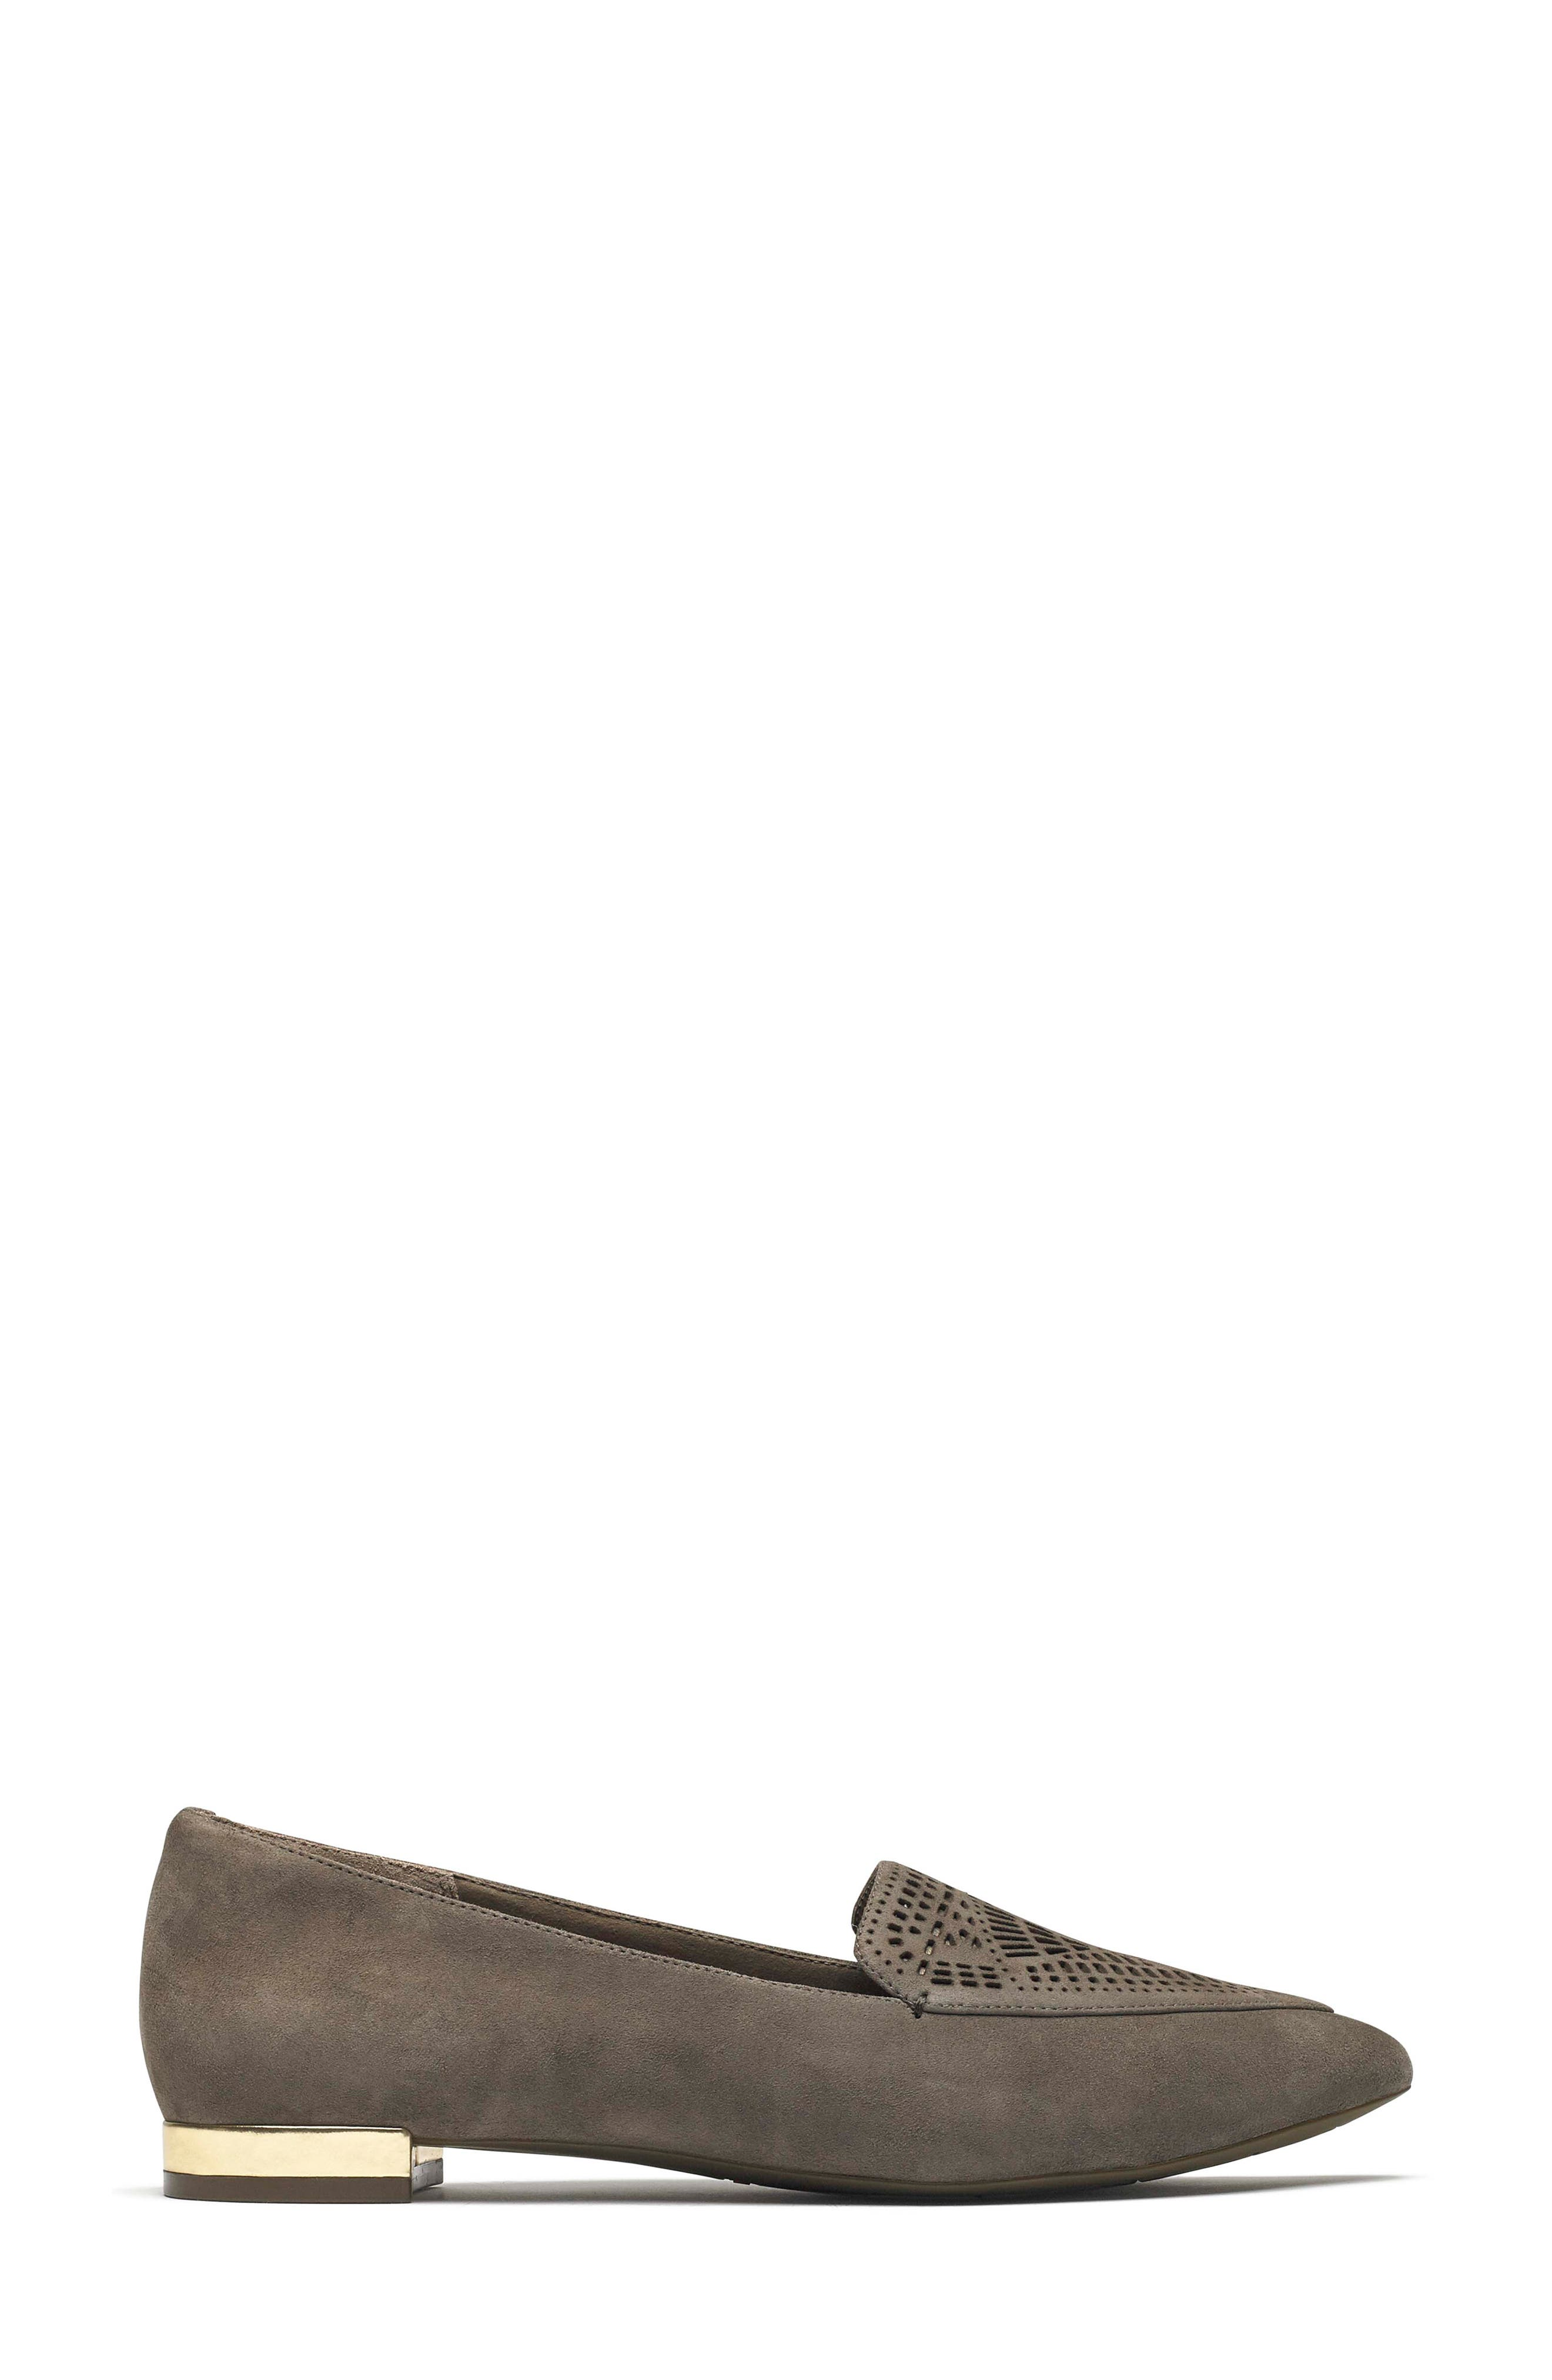 Total Motion Adelyn Loafer,                             Alternate thumbnail 3, color,                             WARM IRON